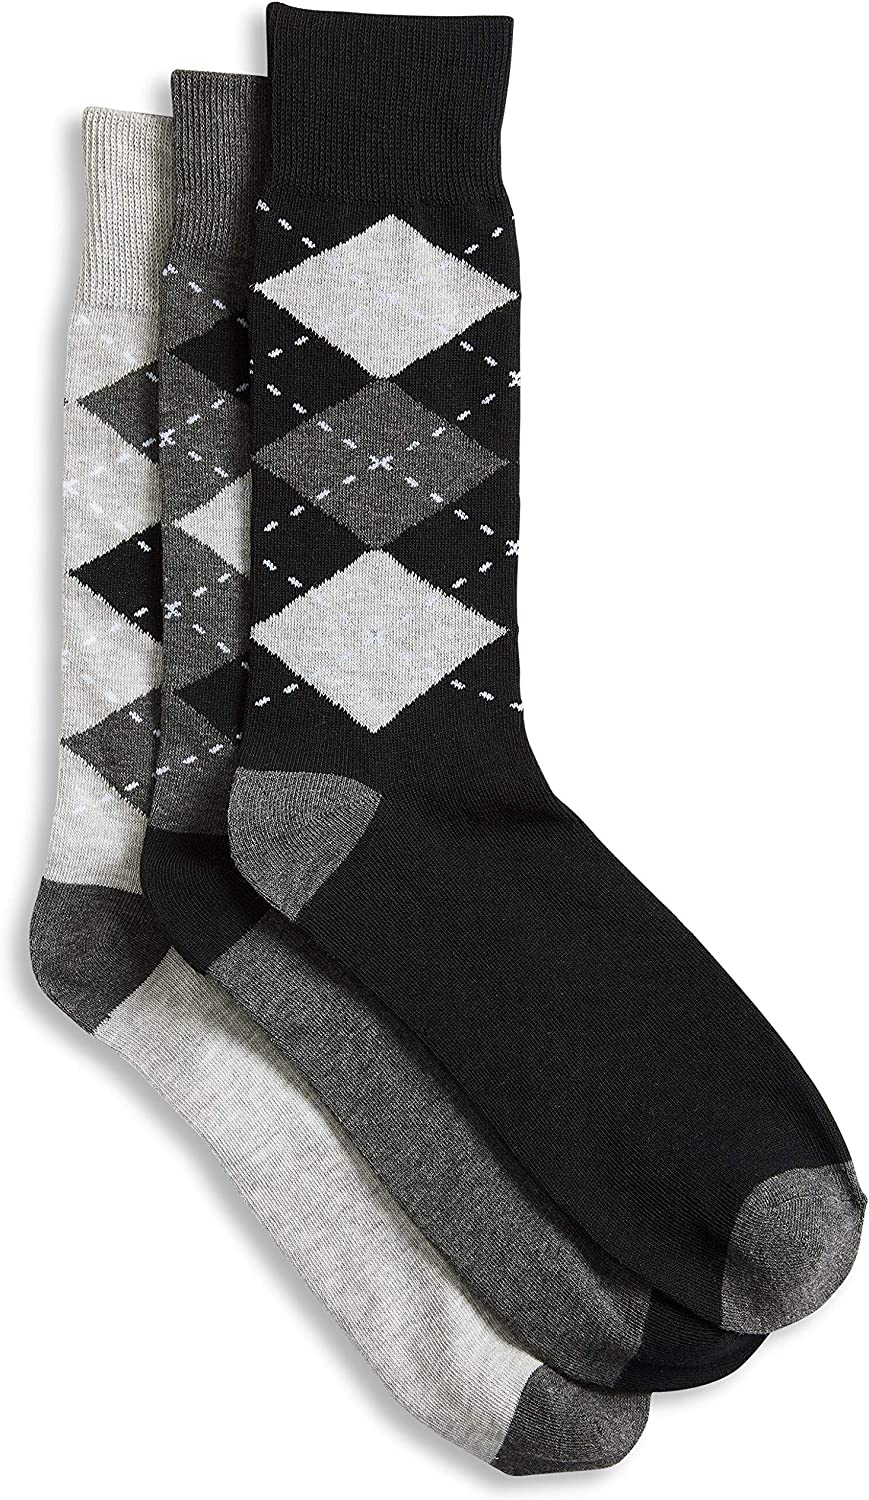 Harbor Bay by DXL Big and Tall 3-pk Argyle-Pattern Crew Socks, Black Assorted, 13-16